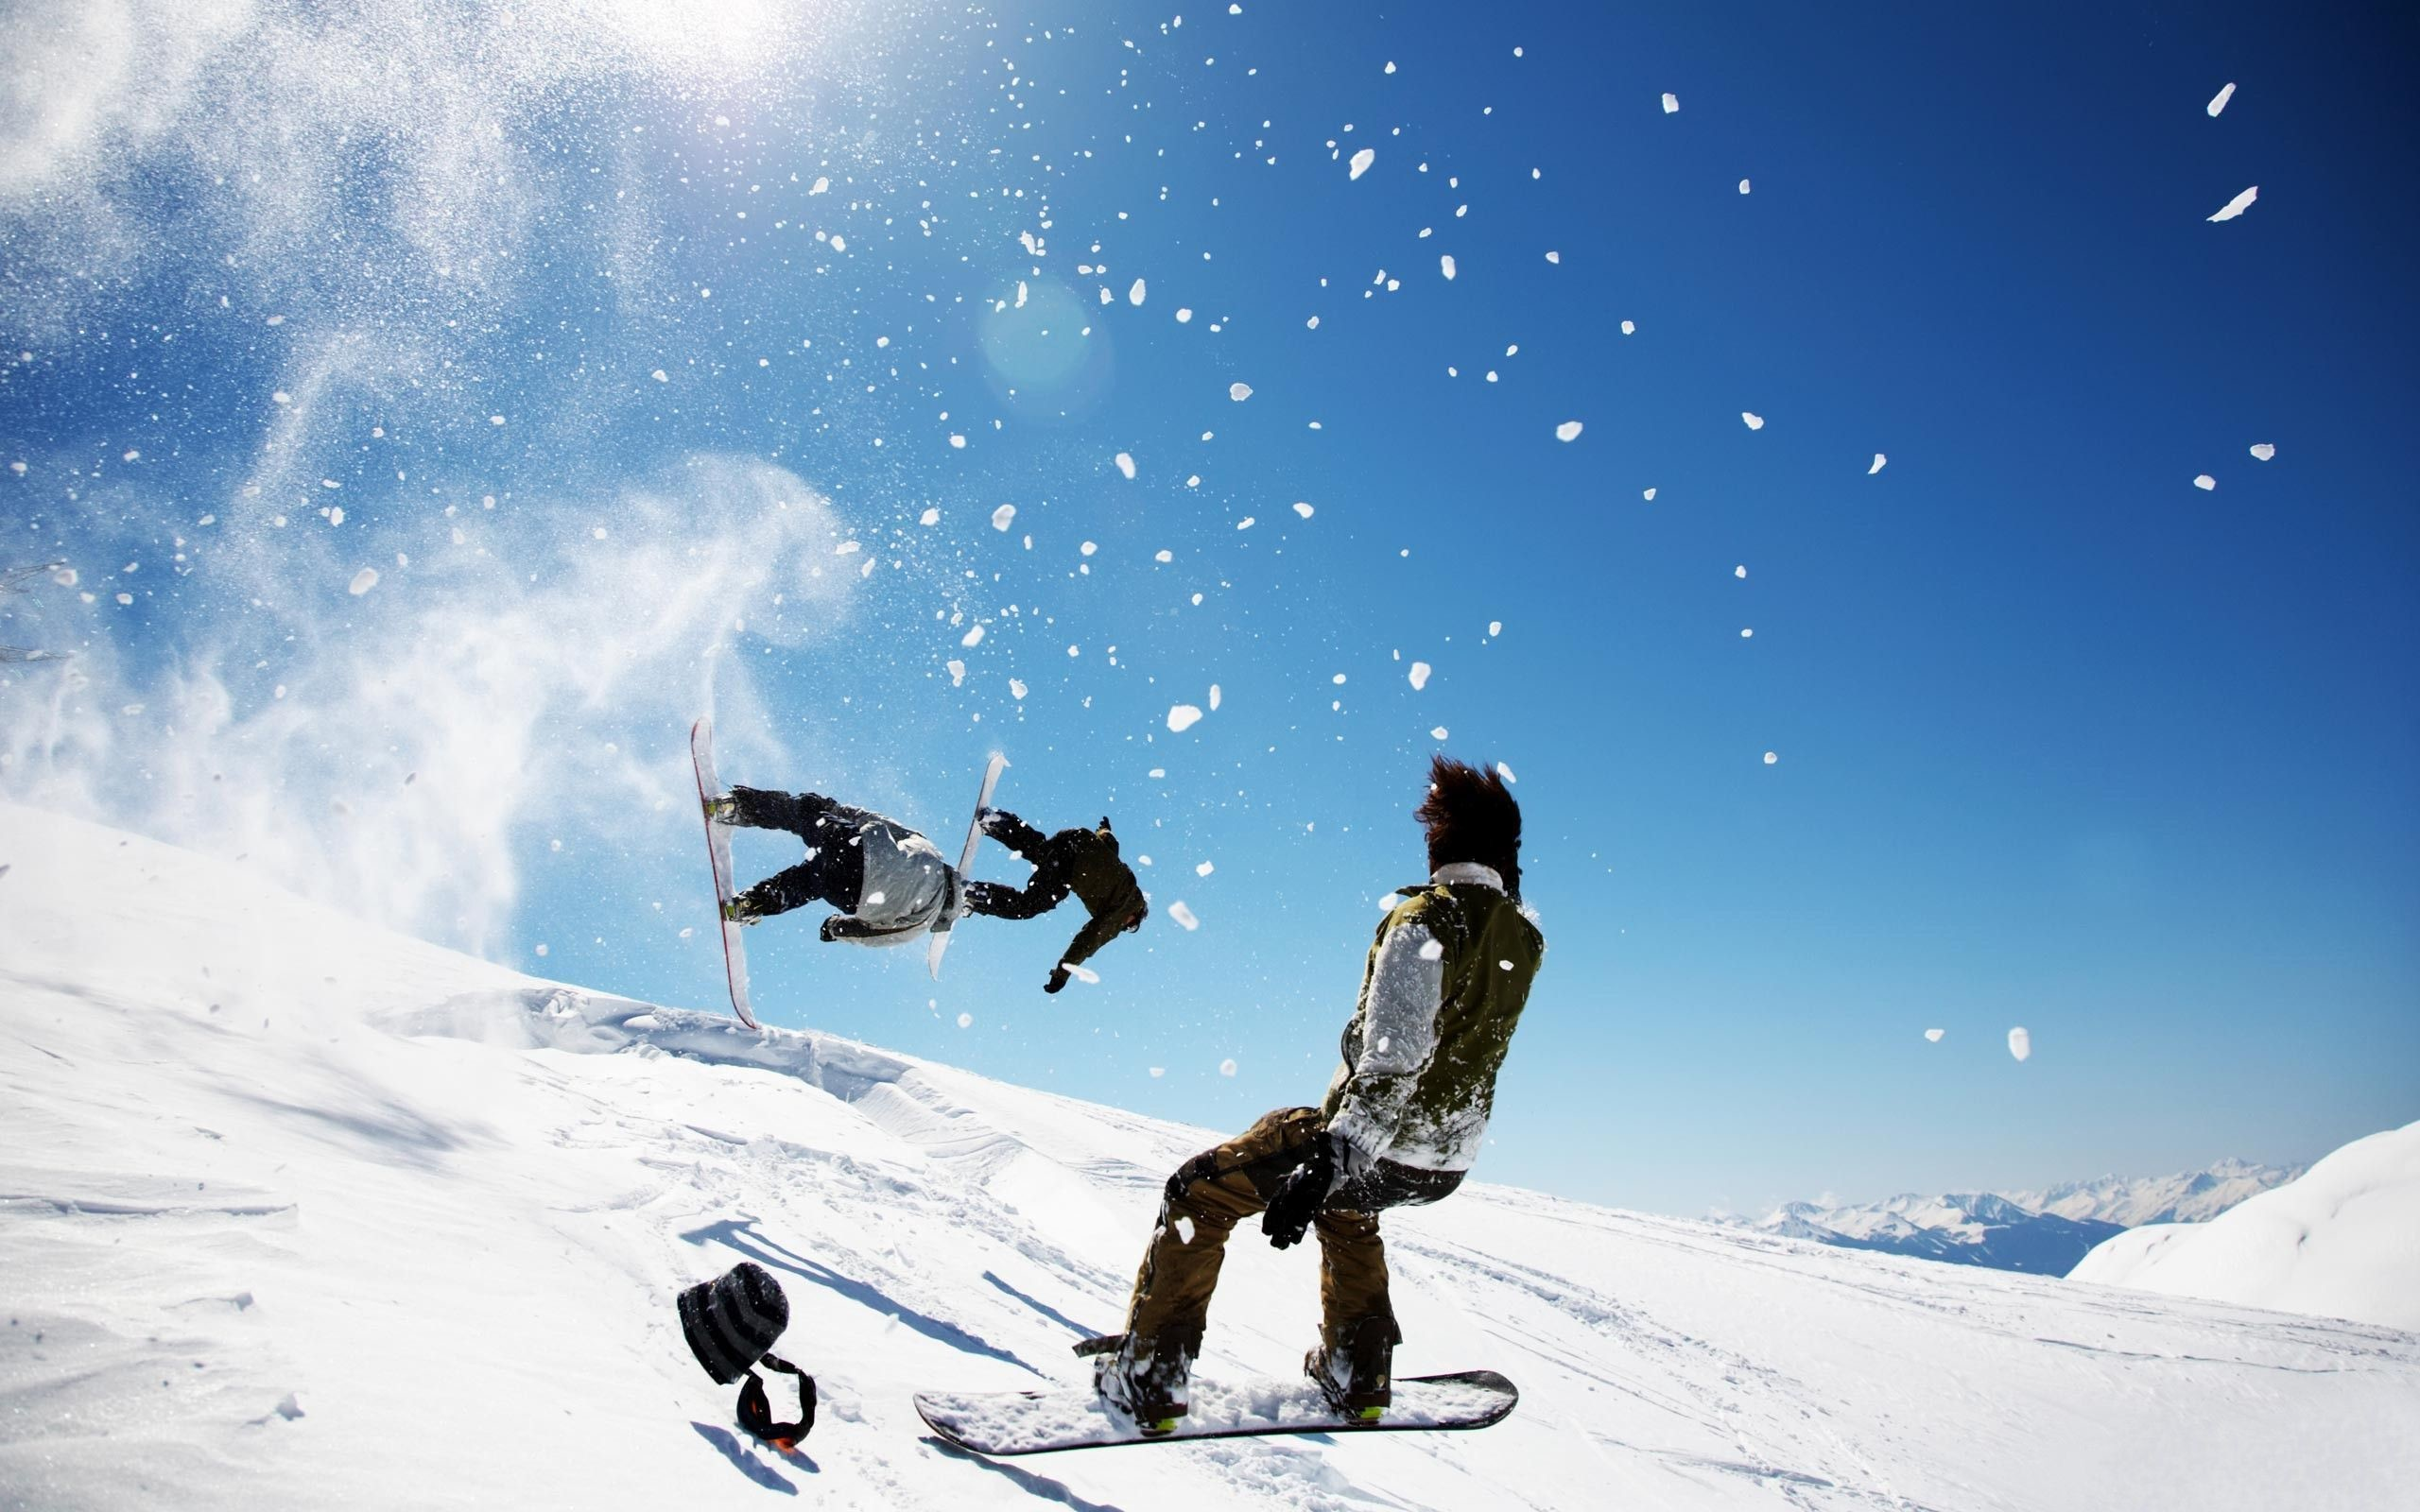 Top Snowboard Wallpaper Snowboarding Sports Images for Pinterest